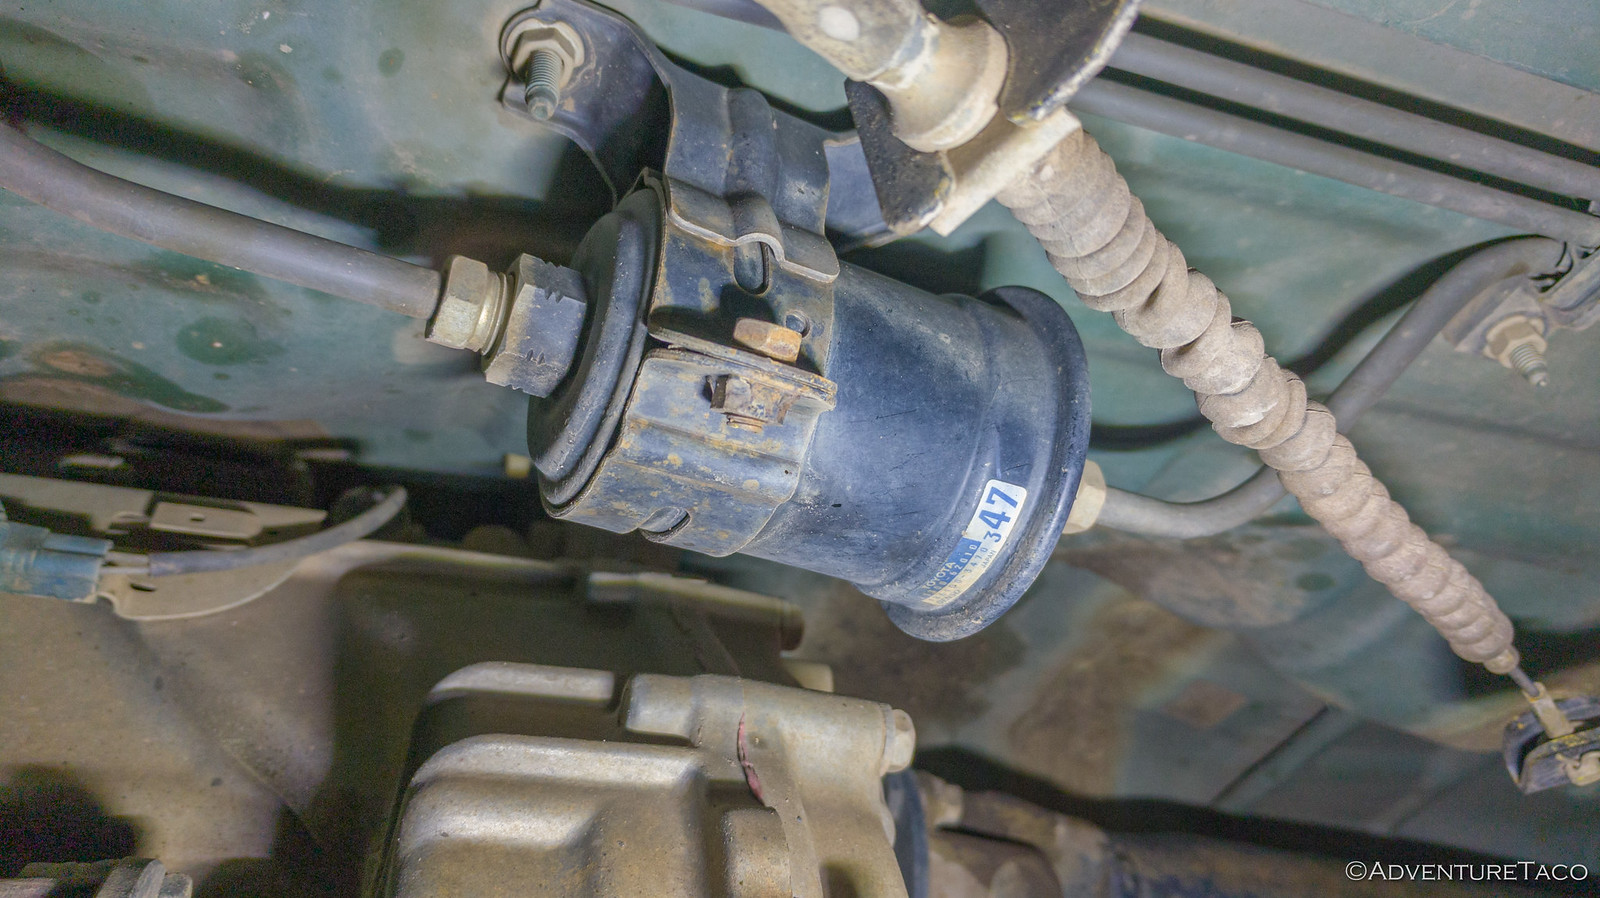 How-to: Replace the Fuel Filter in a 96-04 Tacoma or 96-02 4Runner –  ADVENTURE TACOADVENTURE TACO